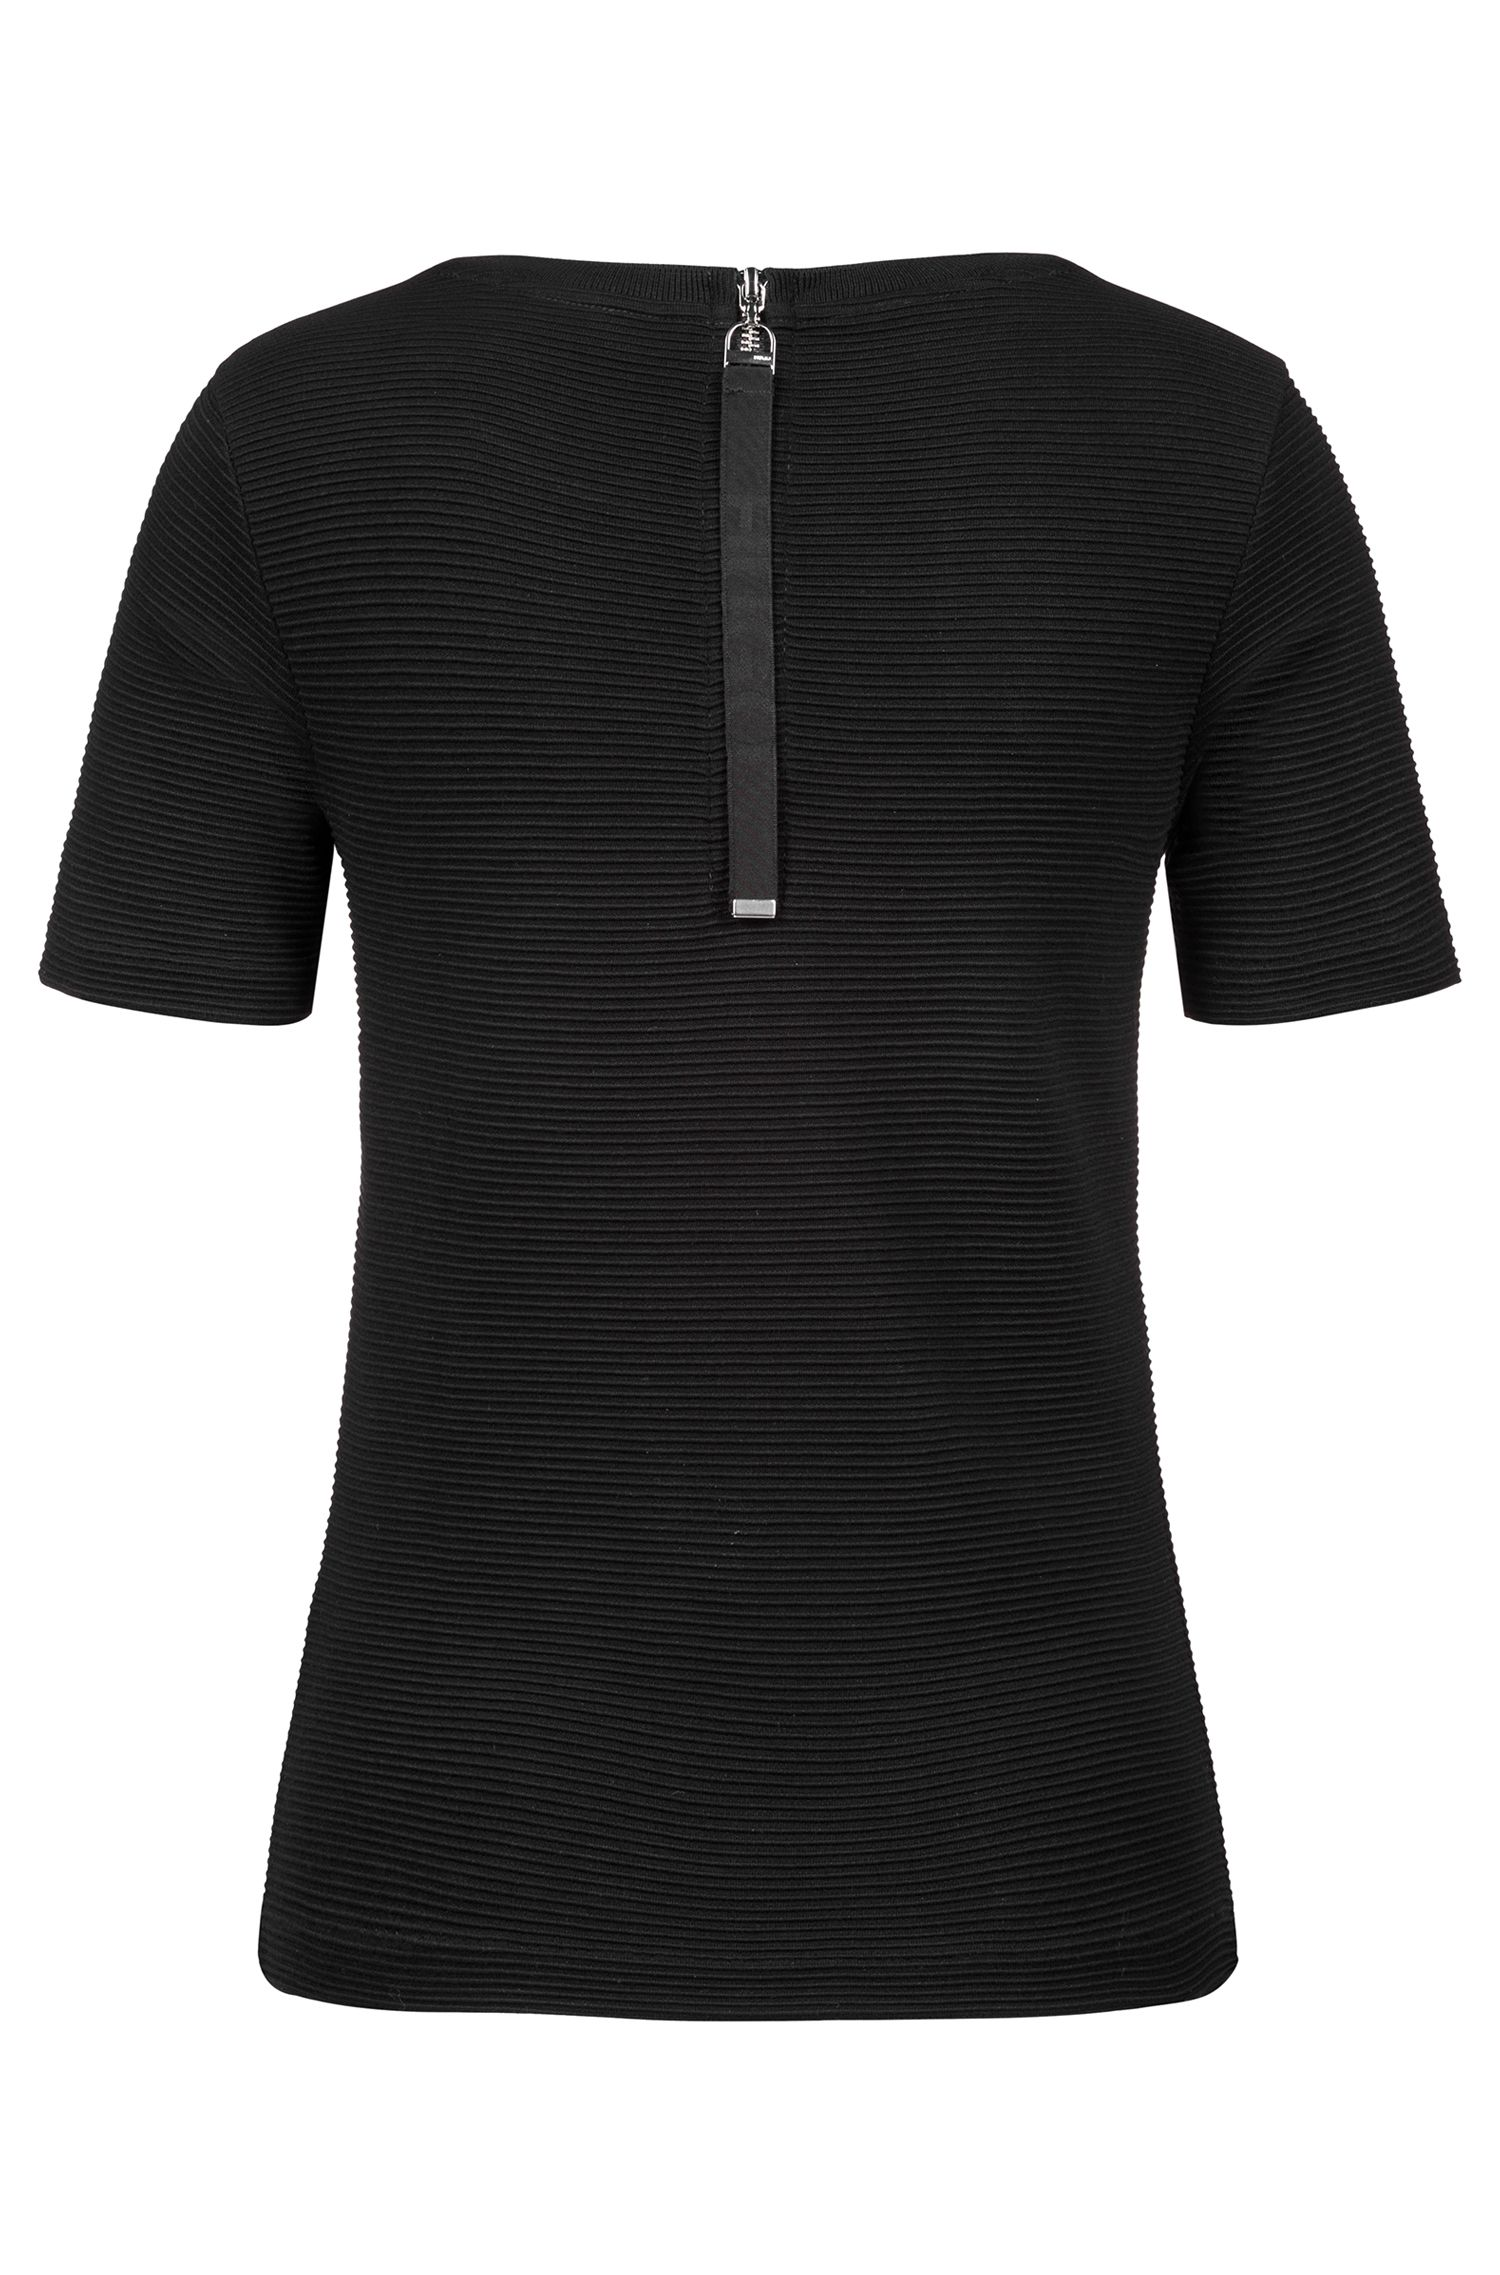 Slim-fit T-shirt in ottoman jersey with statement zip, Black